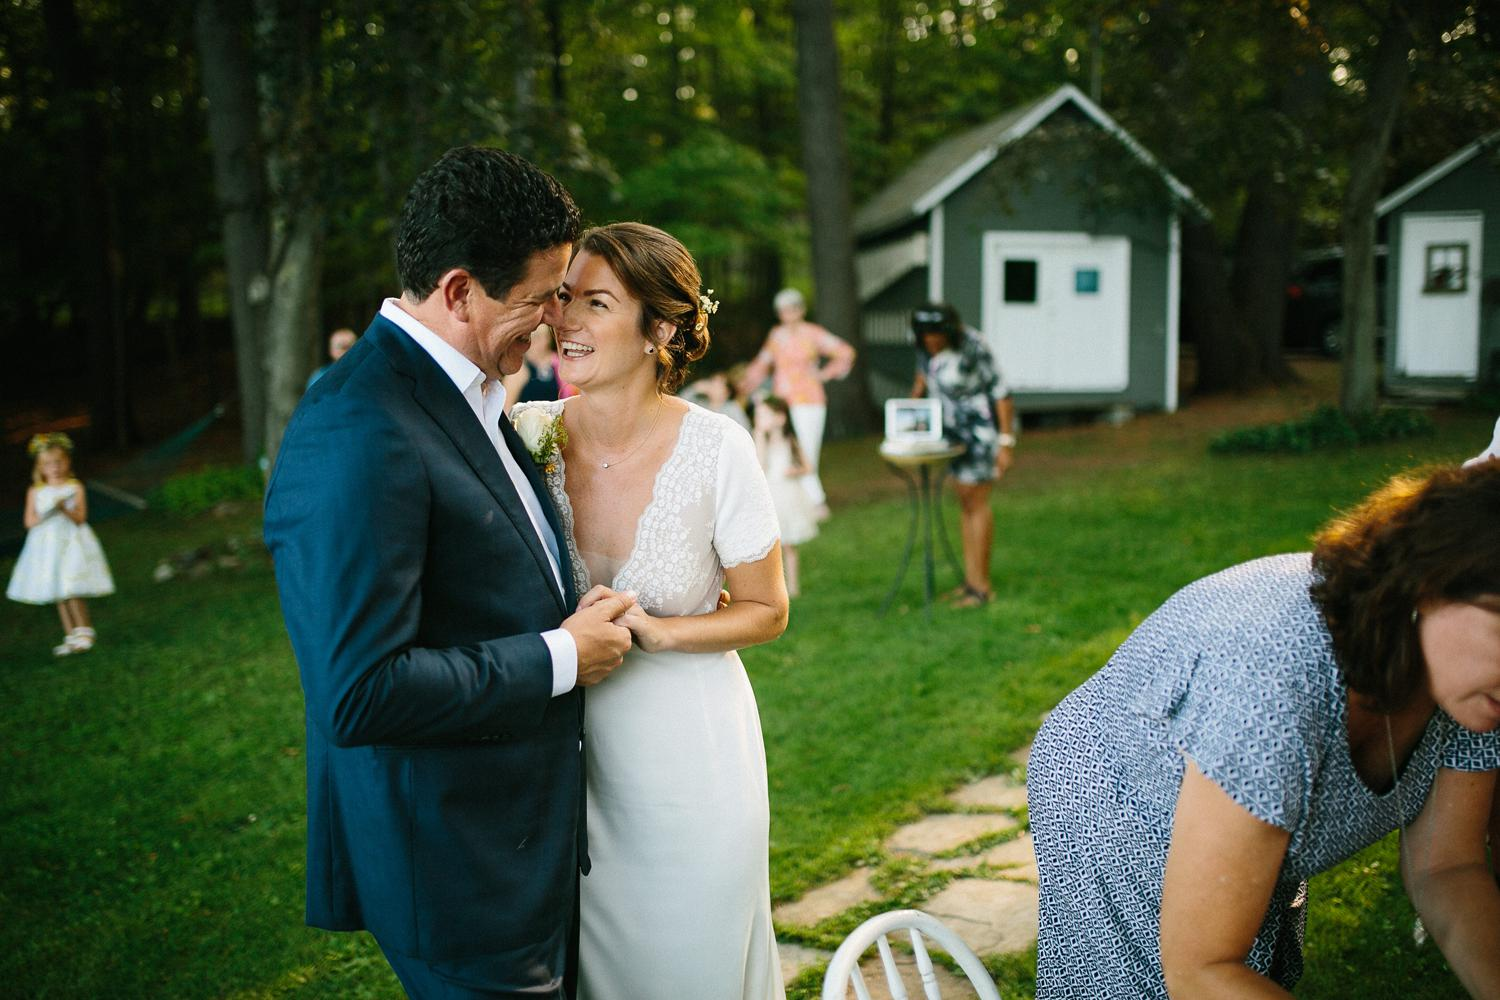 otty lake cottage wedding perth ontario-094.jpg